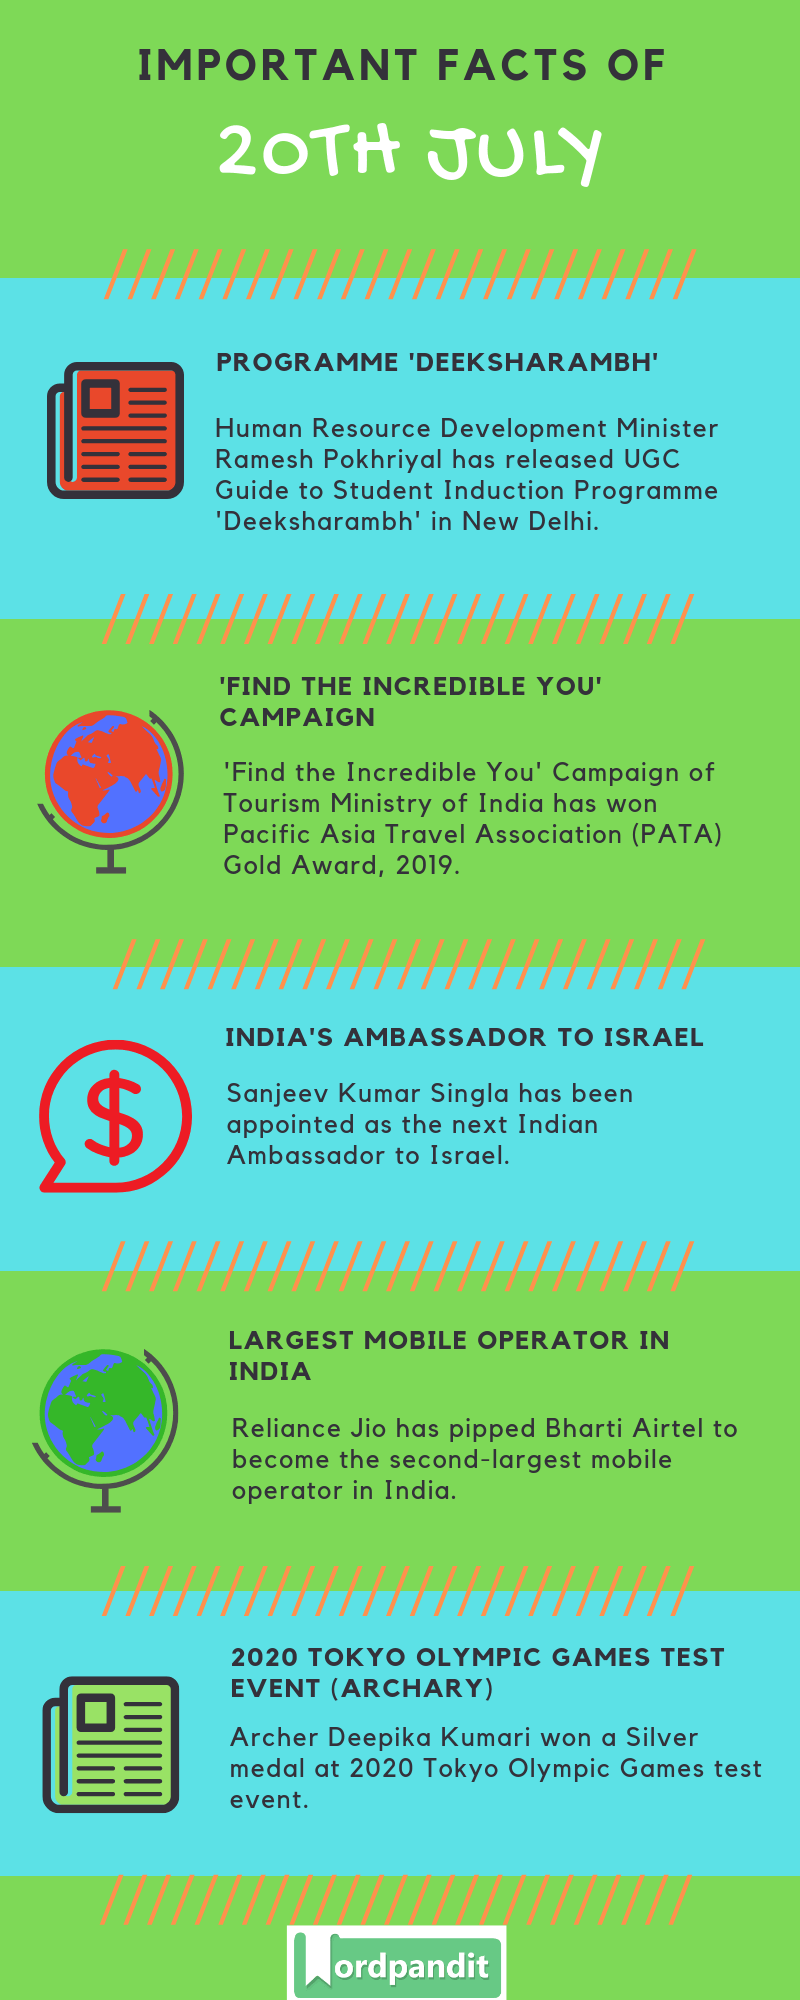 Daily Current Affairs 20 July 2019 Current Affairs Quiz 20 July 2019 Current Affairs Infographic